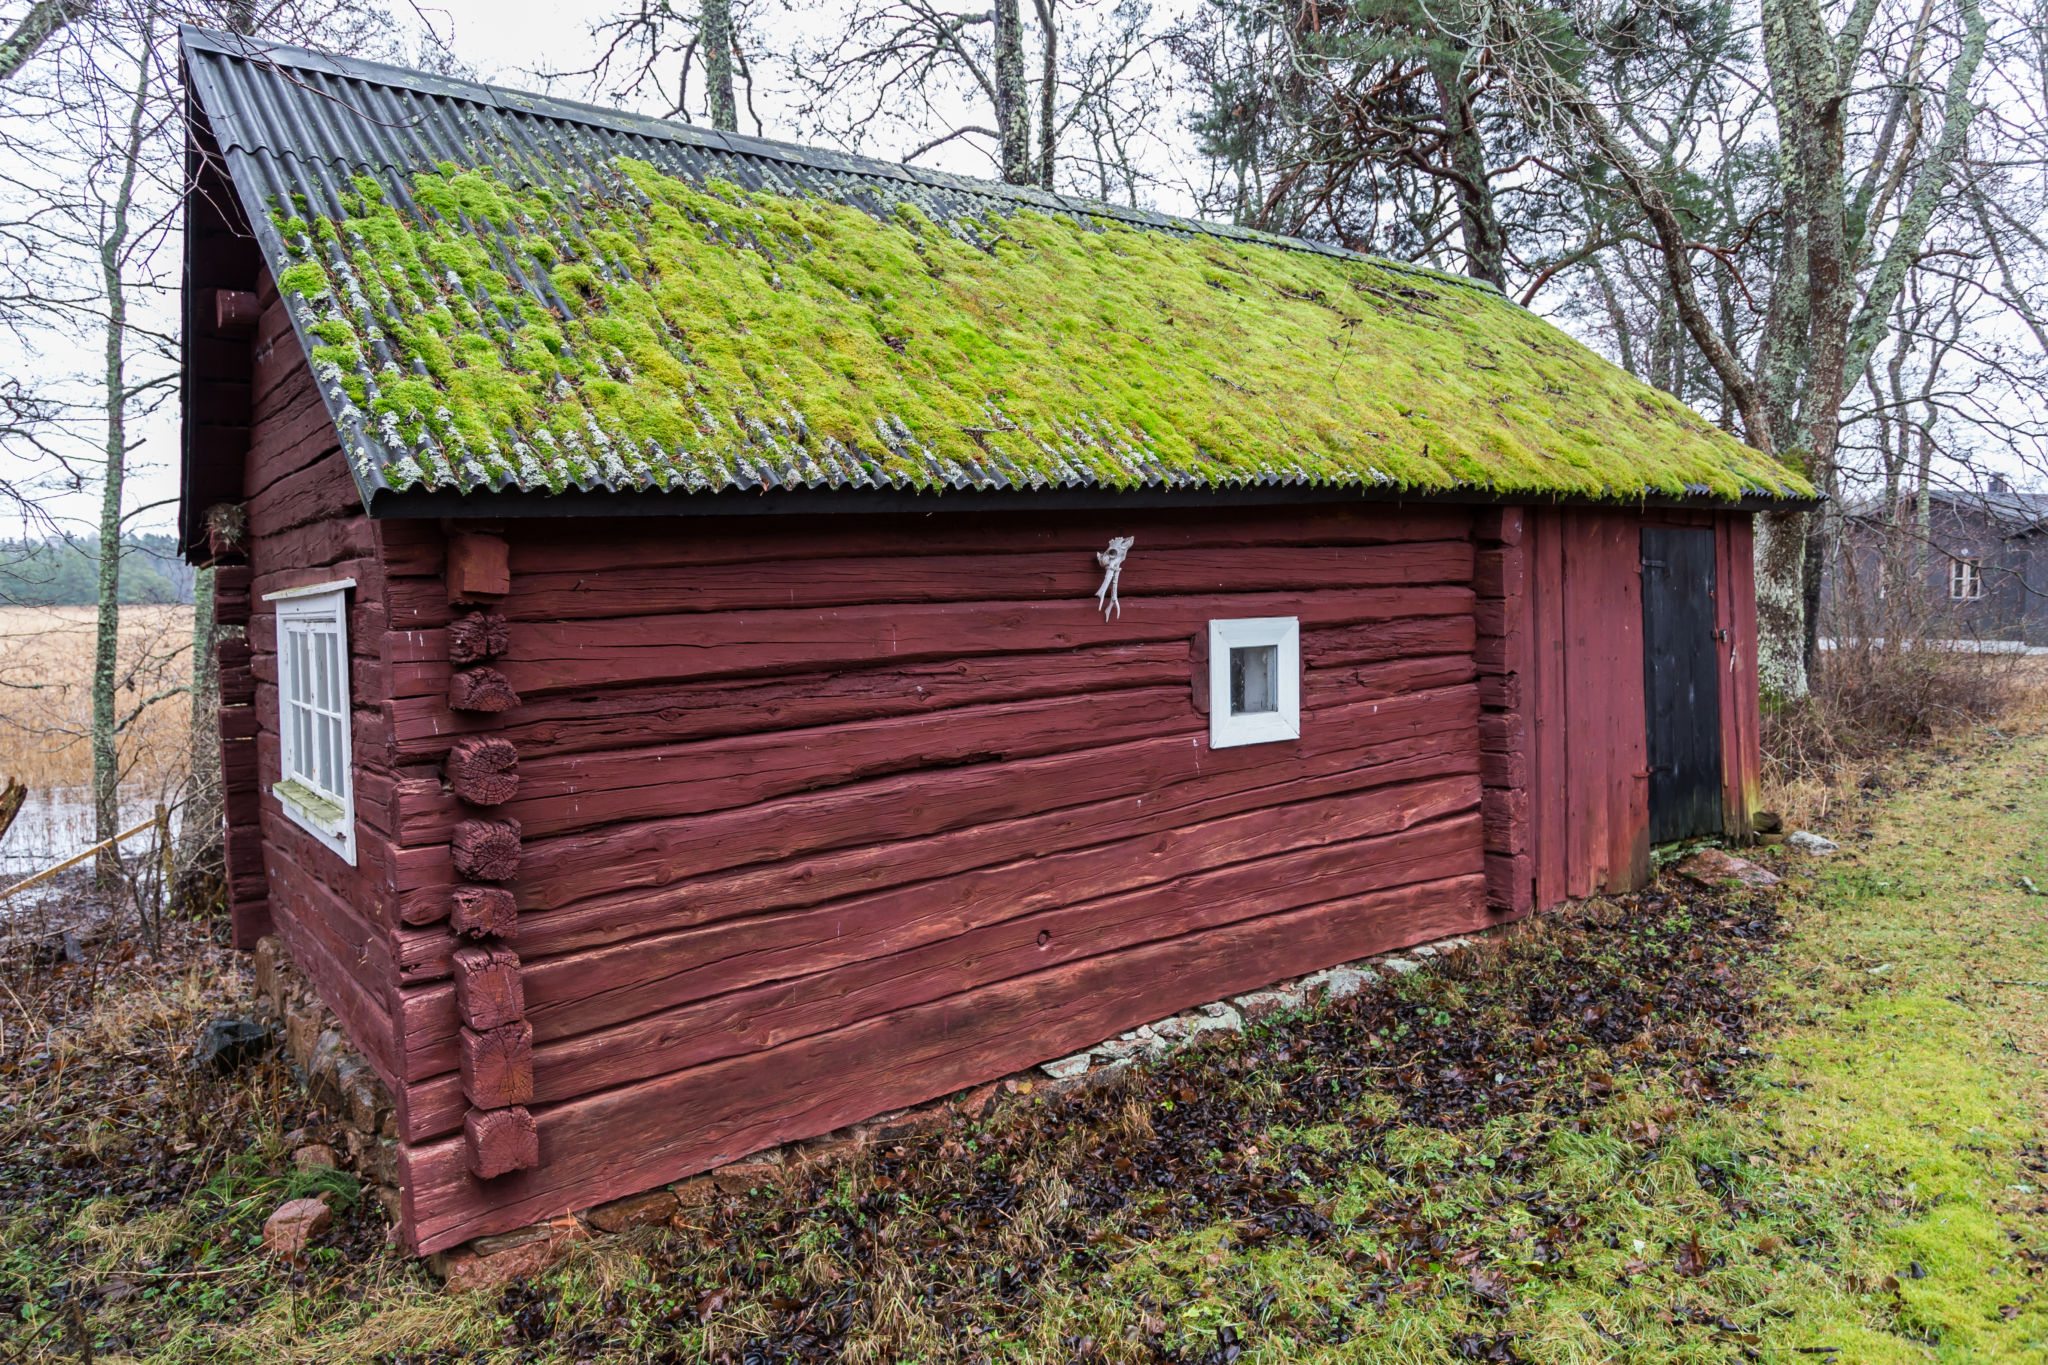 The old sauna at Husö biological station